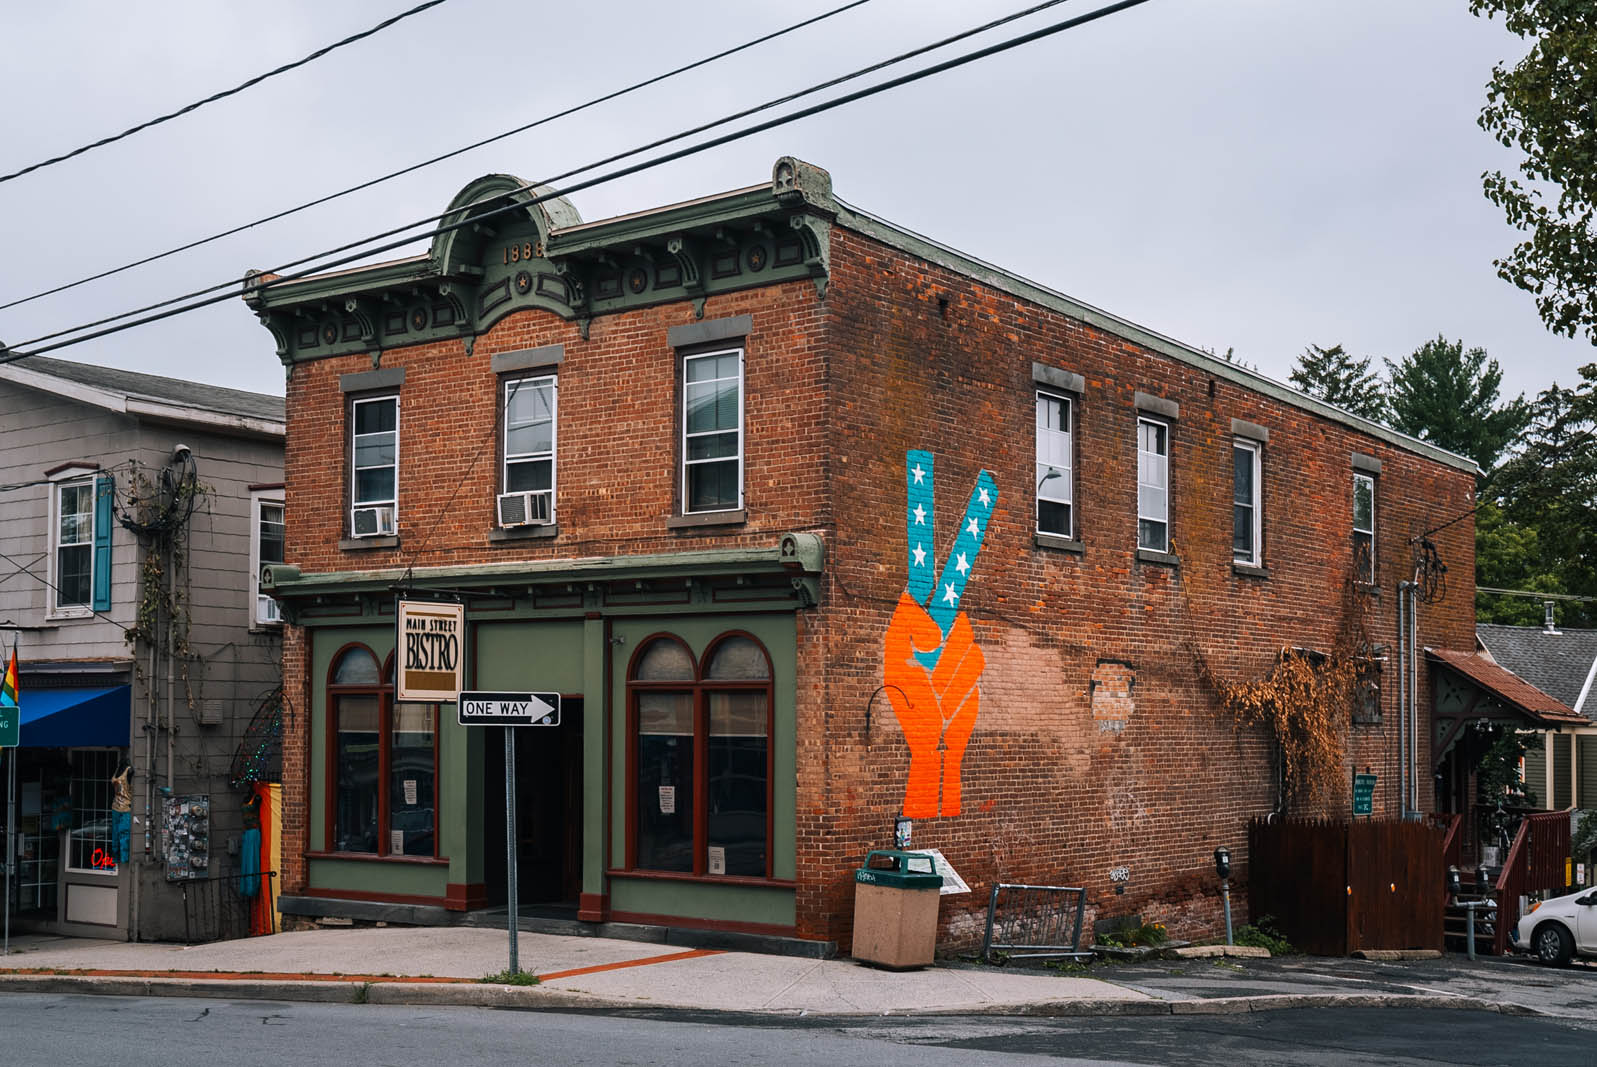 Peace sign mural on a building in downtown New Paltz New York